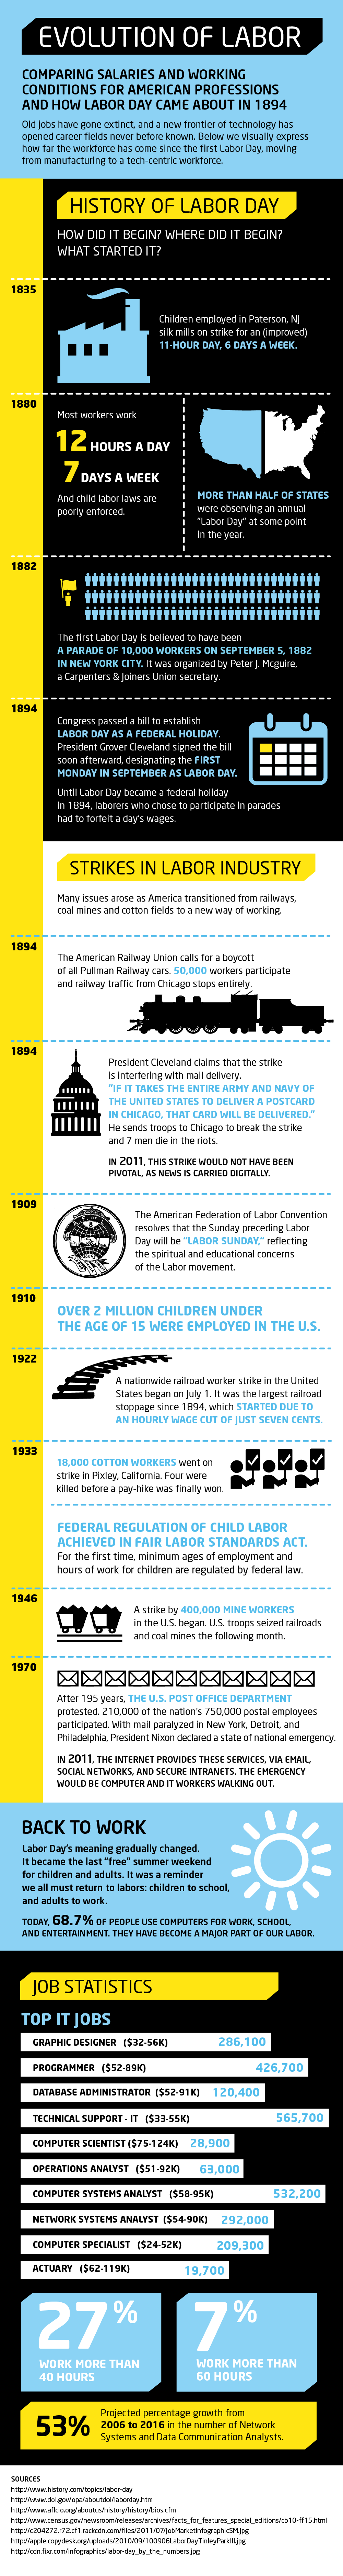 Evolution of Labor #infographic